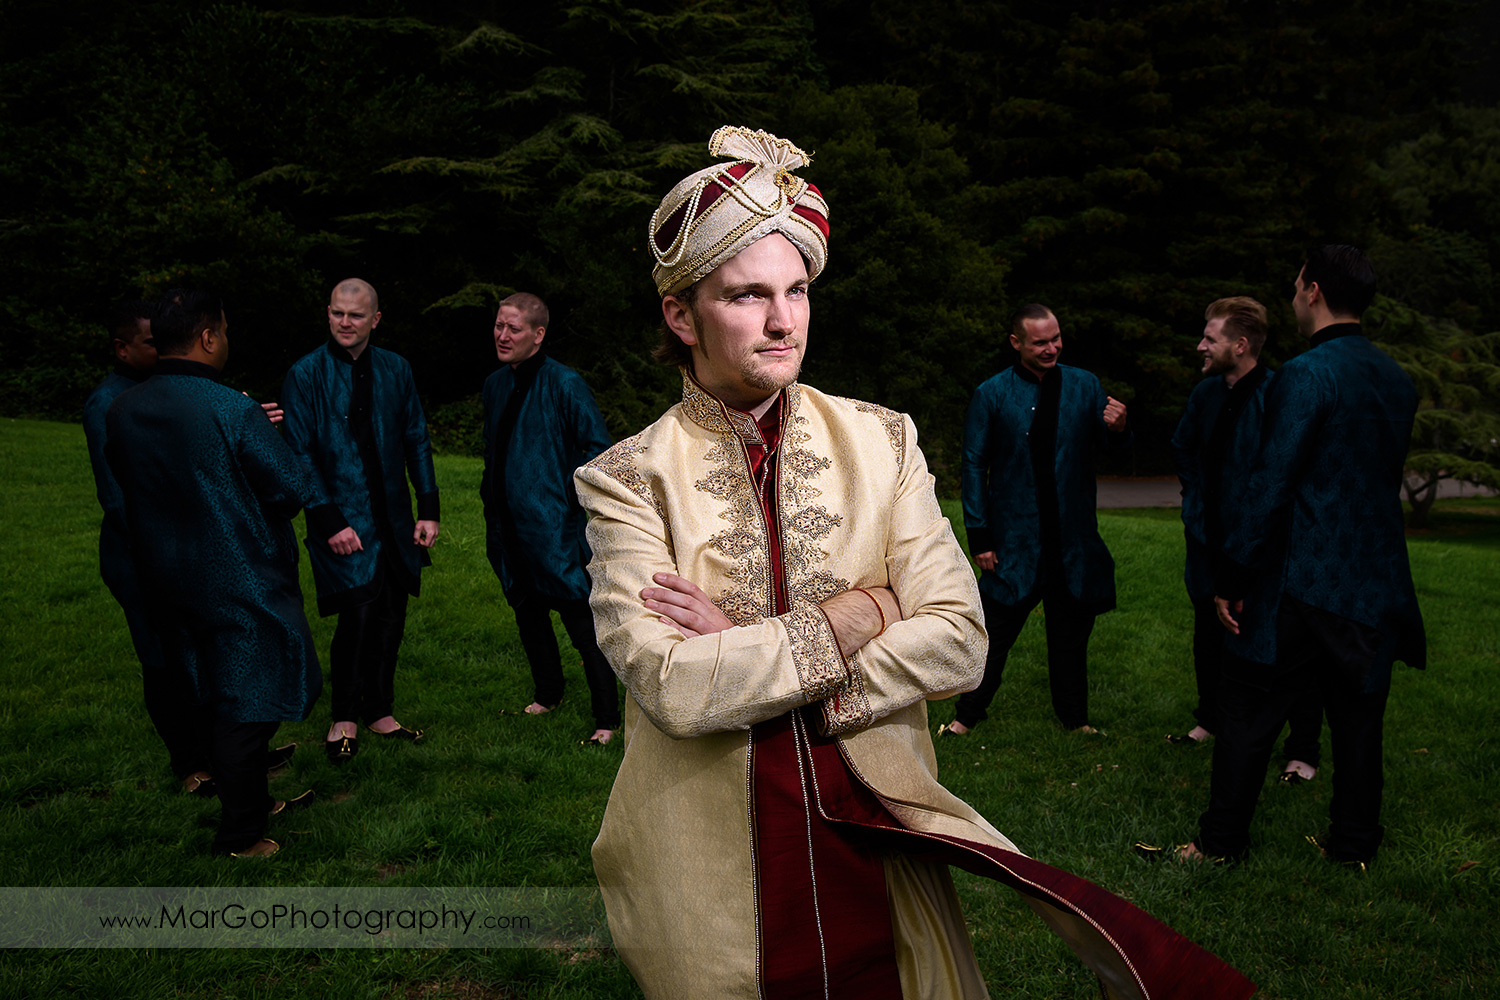 portrait of the groom and groomsmen at Indian wedding at Tilden Regional Park, Berkeley